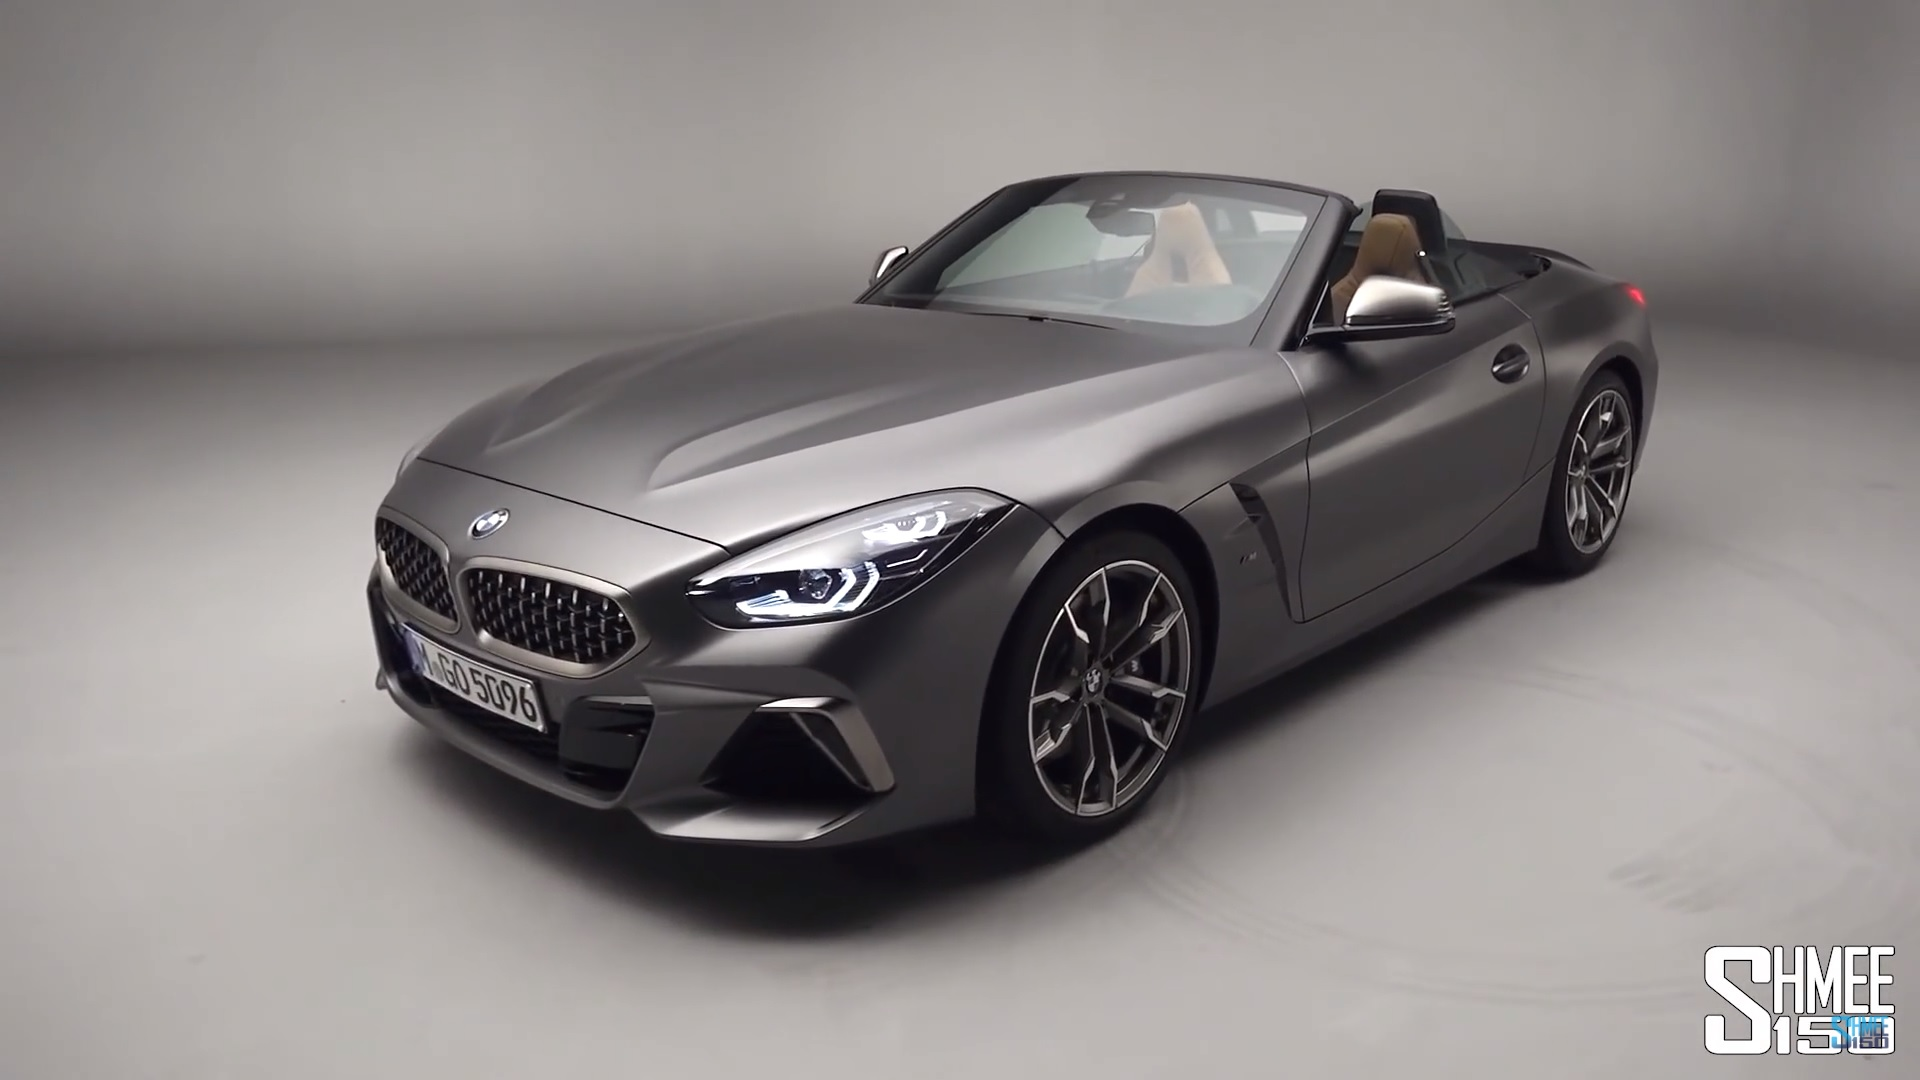 Full Walkaround Of The 2019 Bmw Z4 M40i Does The U S